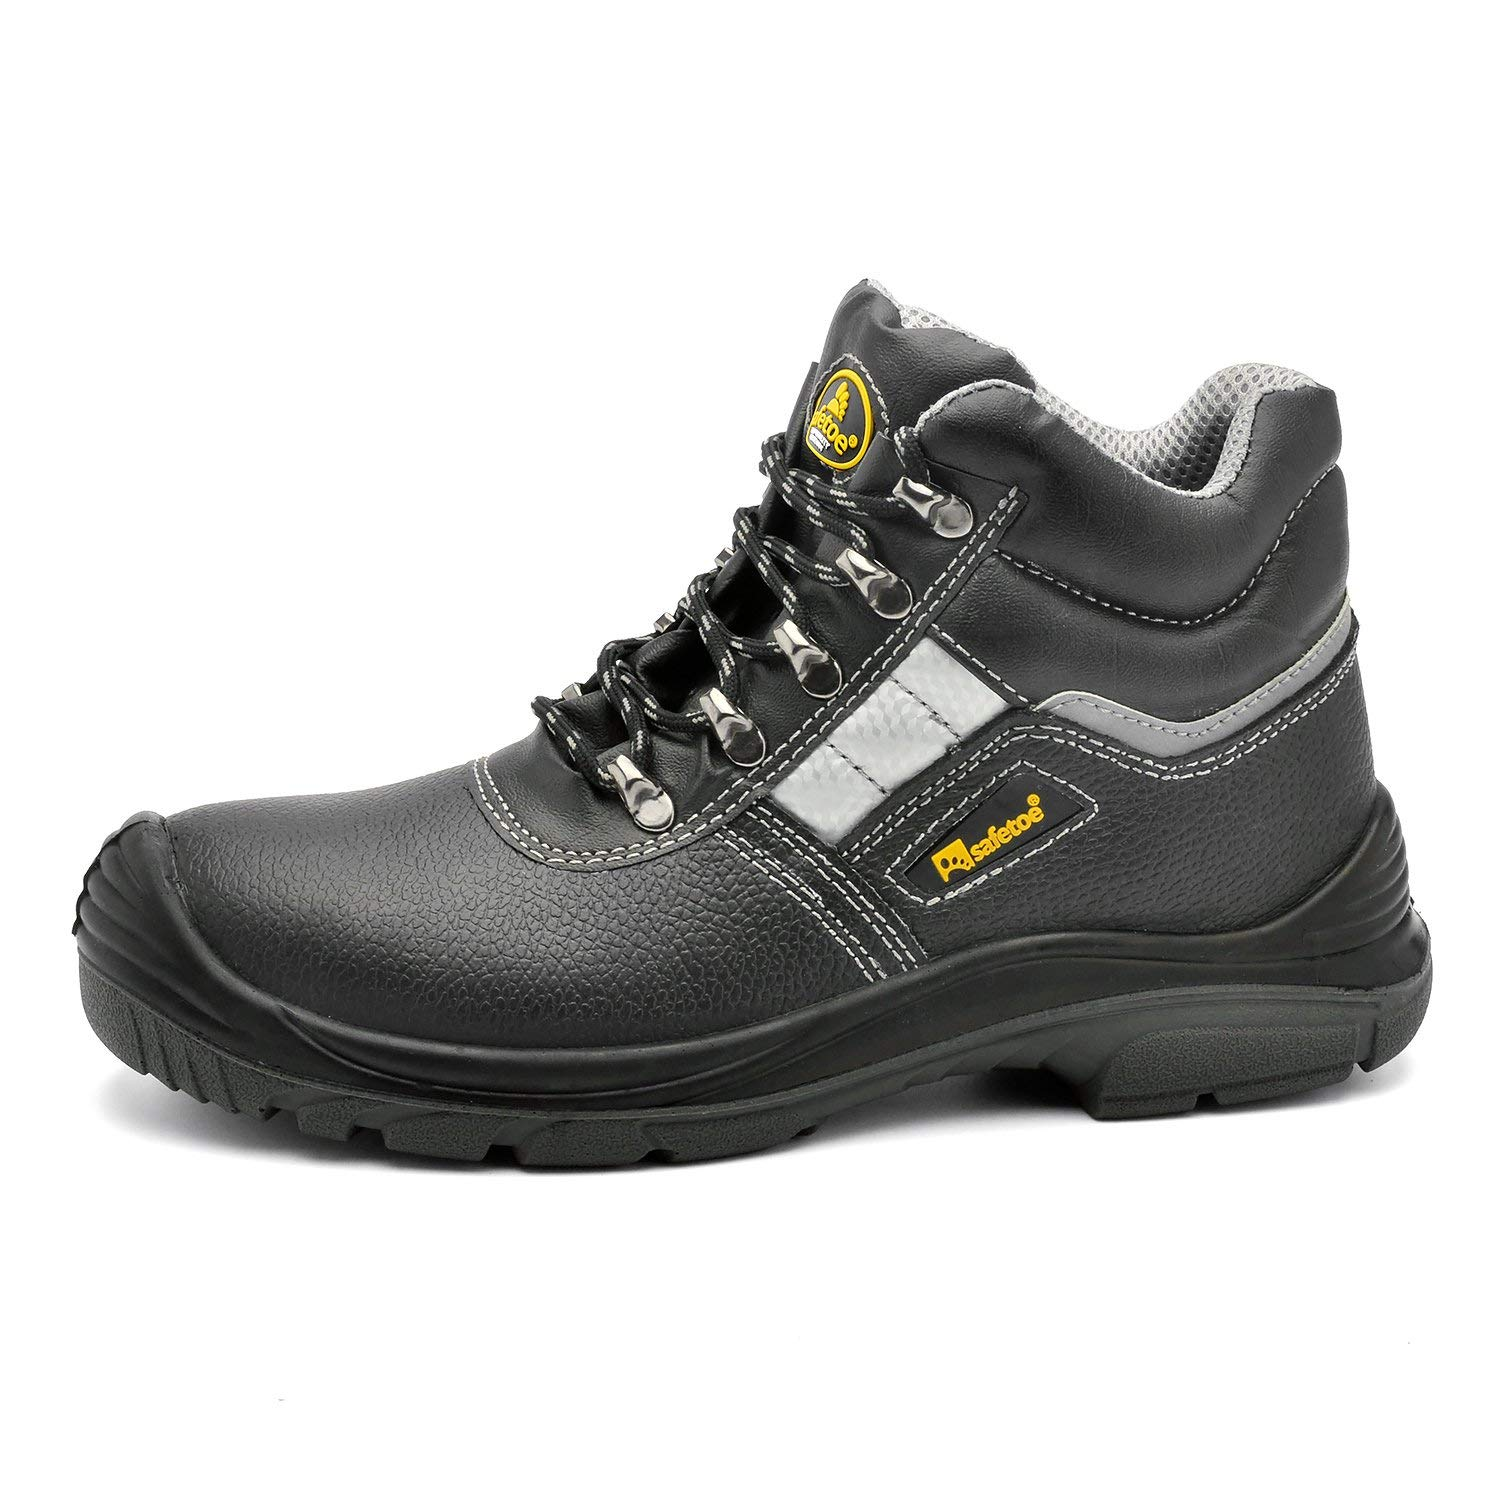 5cfc30cbc3d Cheap Wide Safety Boots, find Wide Safety Boots deals on line at ...